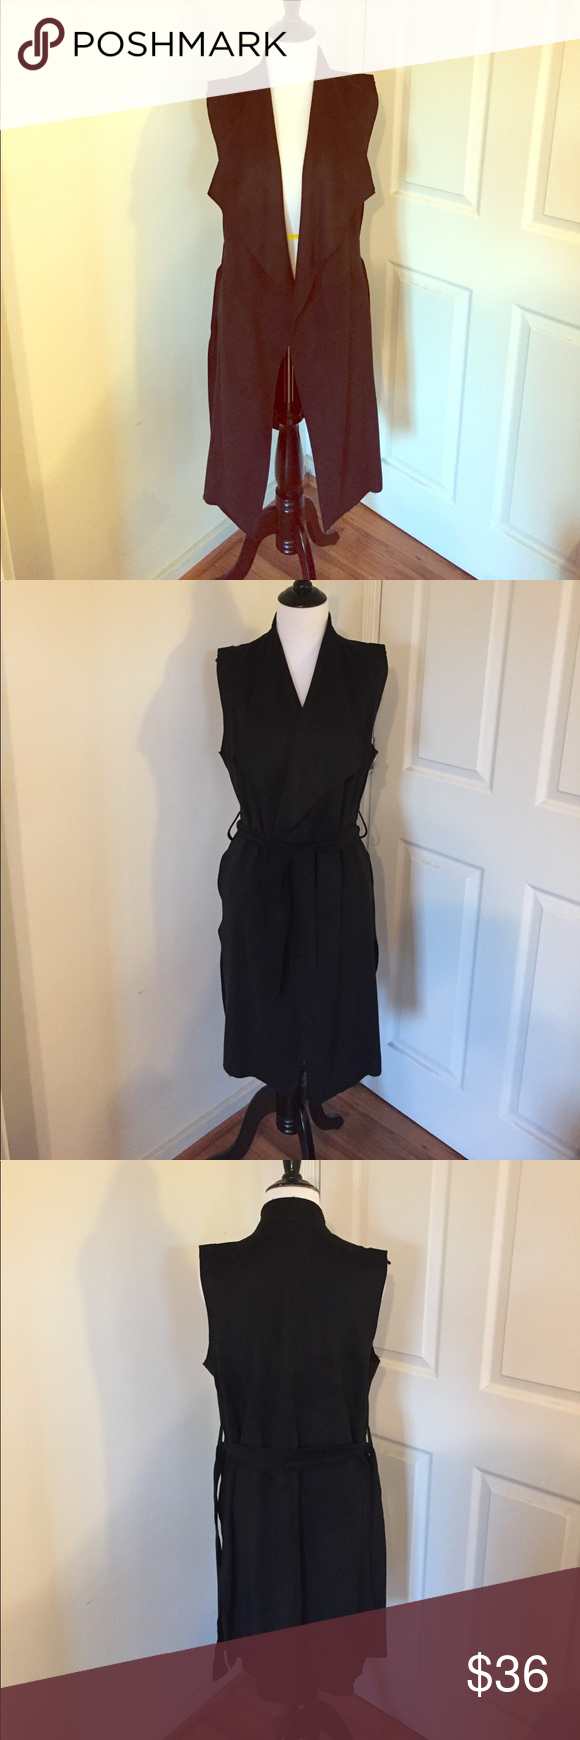 Nwt zara black ultrasuede vest zara black long black and zara jackets